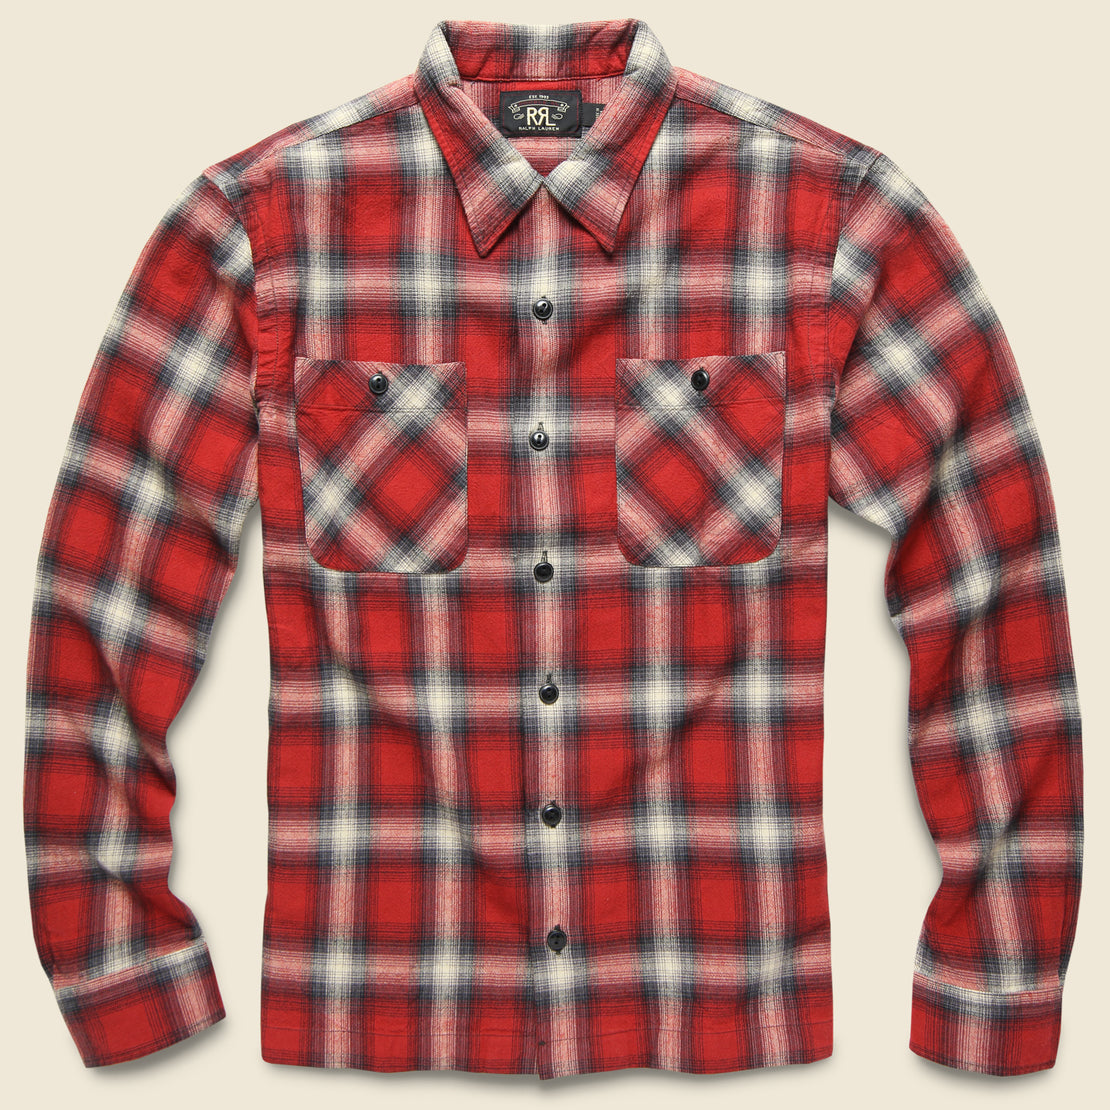 RRL Monterey Ombre Plaid Flannel - Red/Black